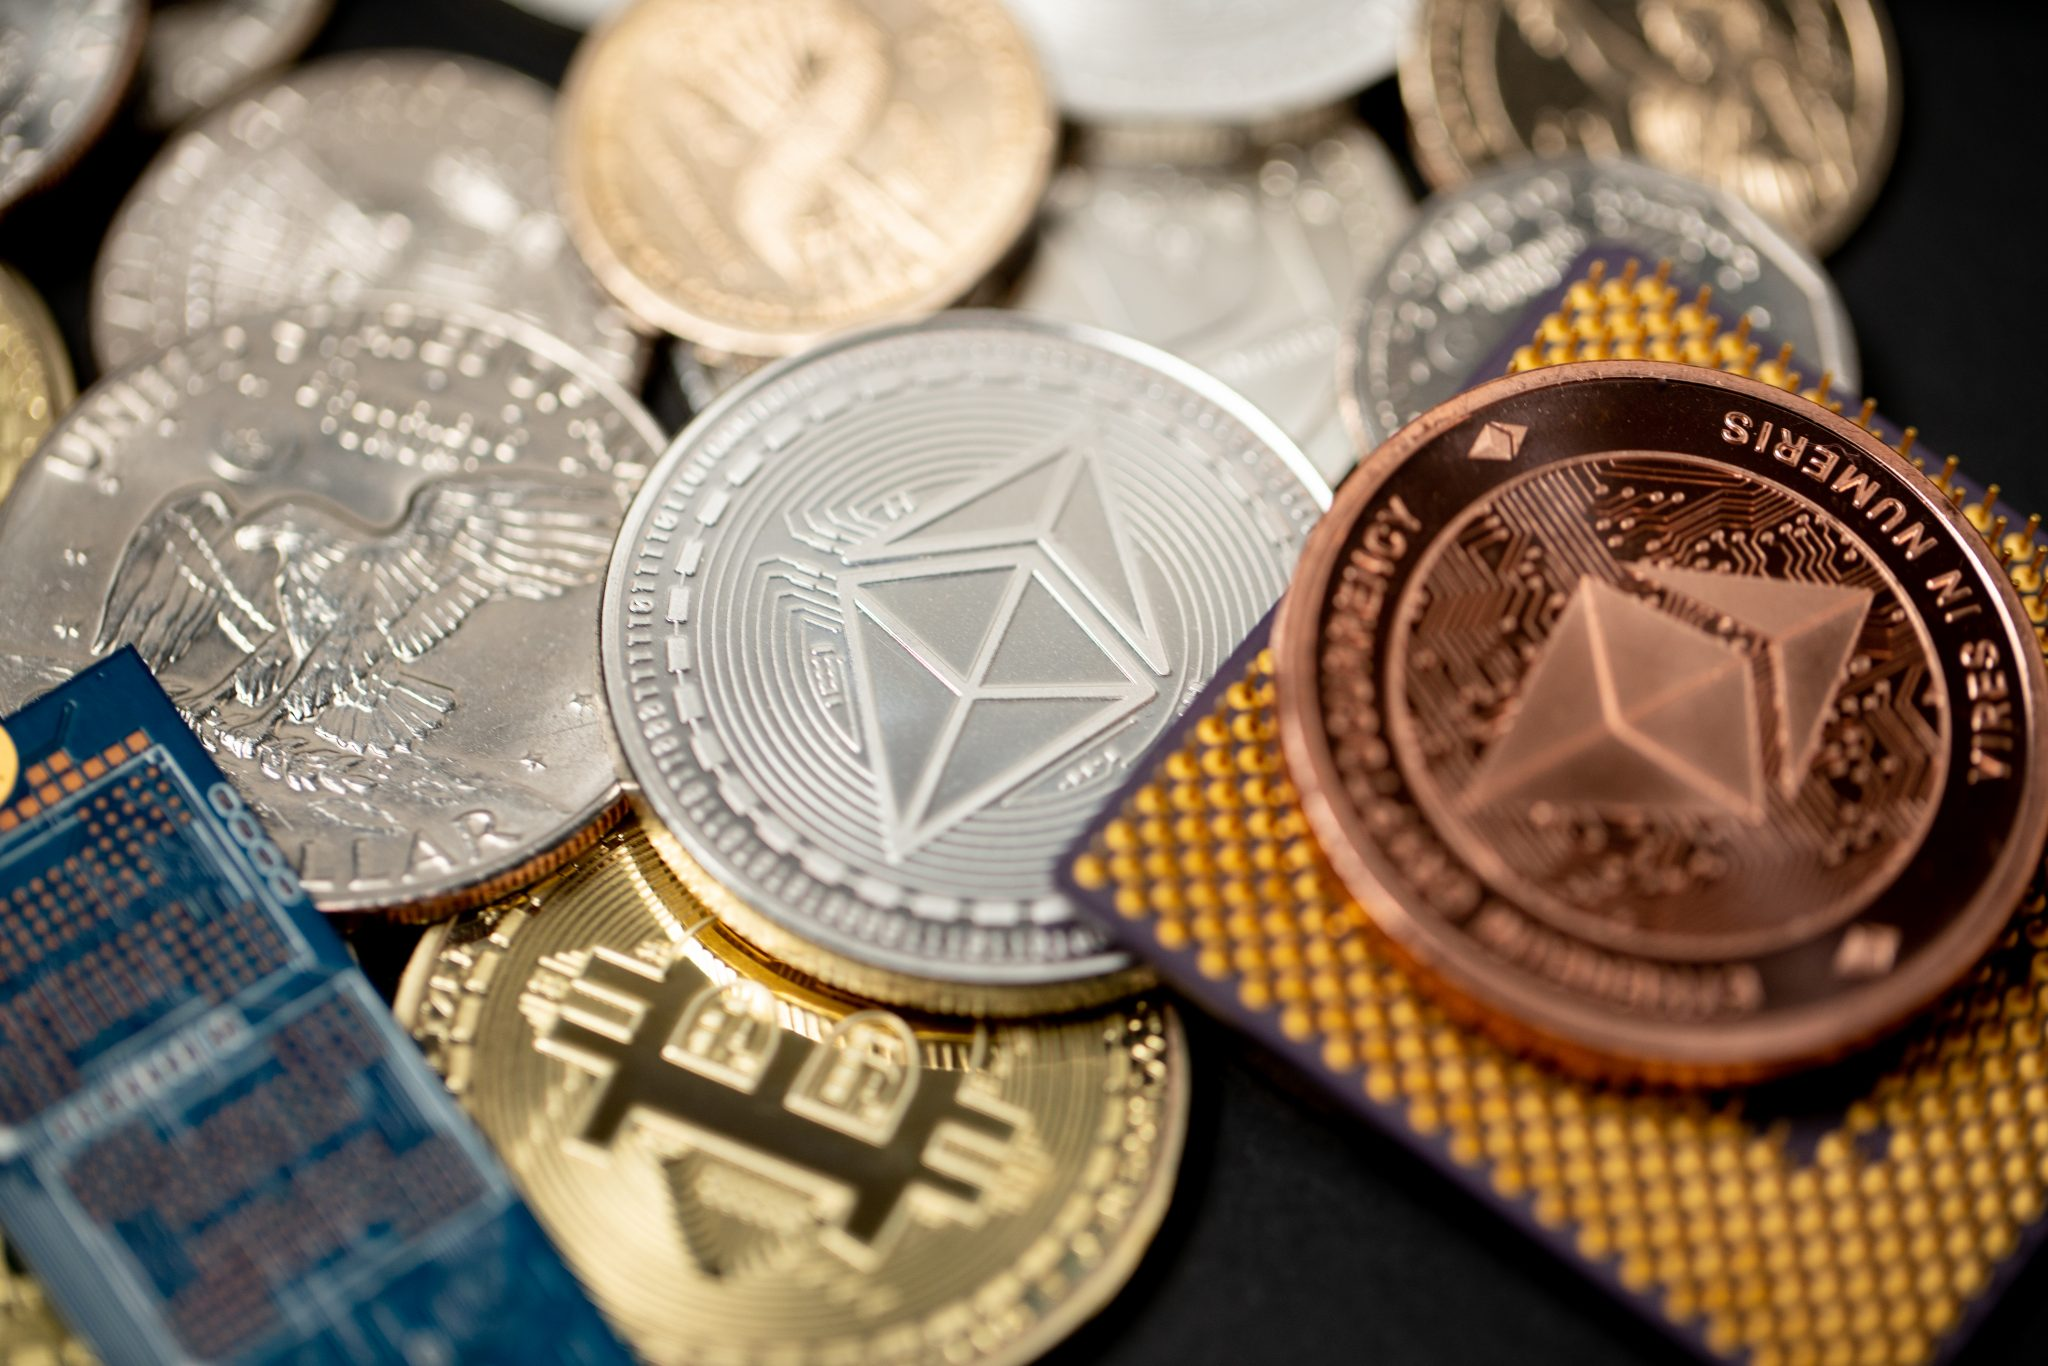 Ethereum coin in gold and copper, next to microchip and us one dollar coin. Concept of crypto mining, computing power and cost of mining crypto currencies